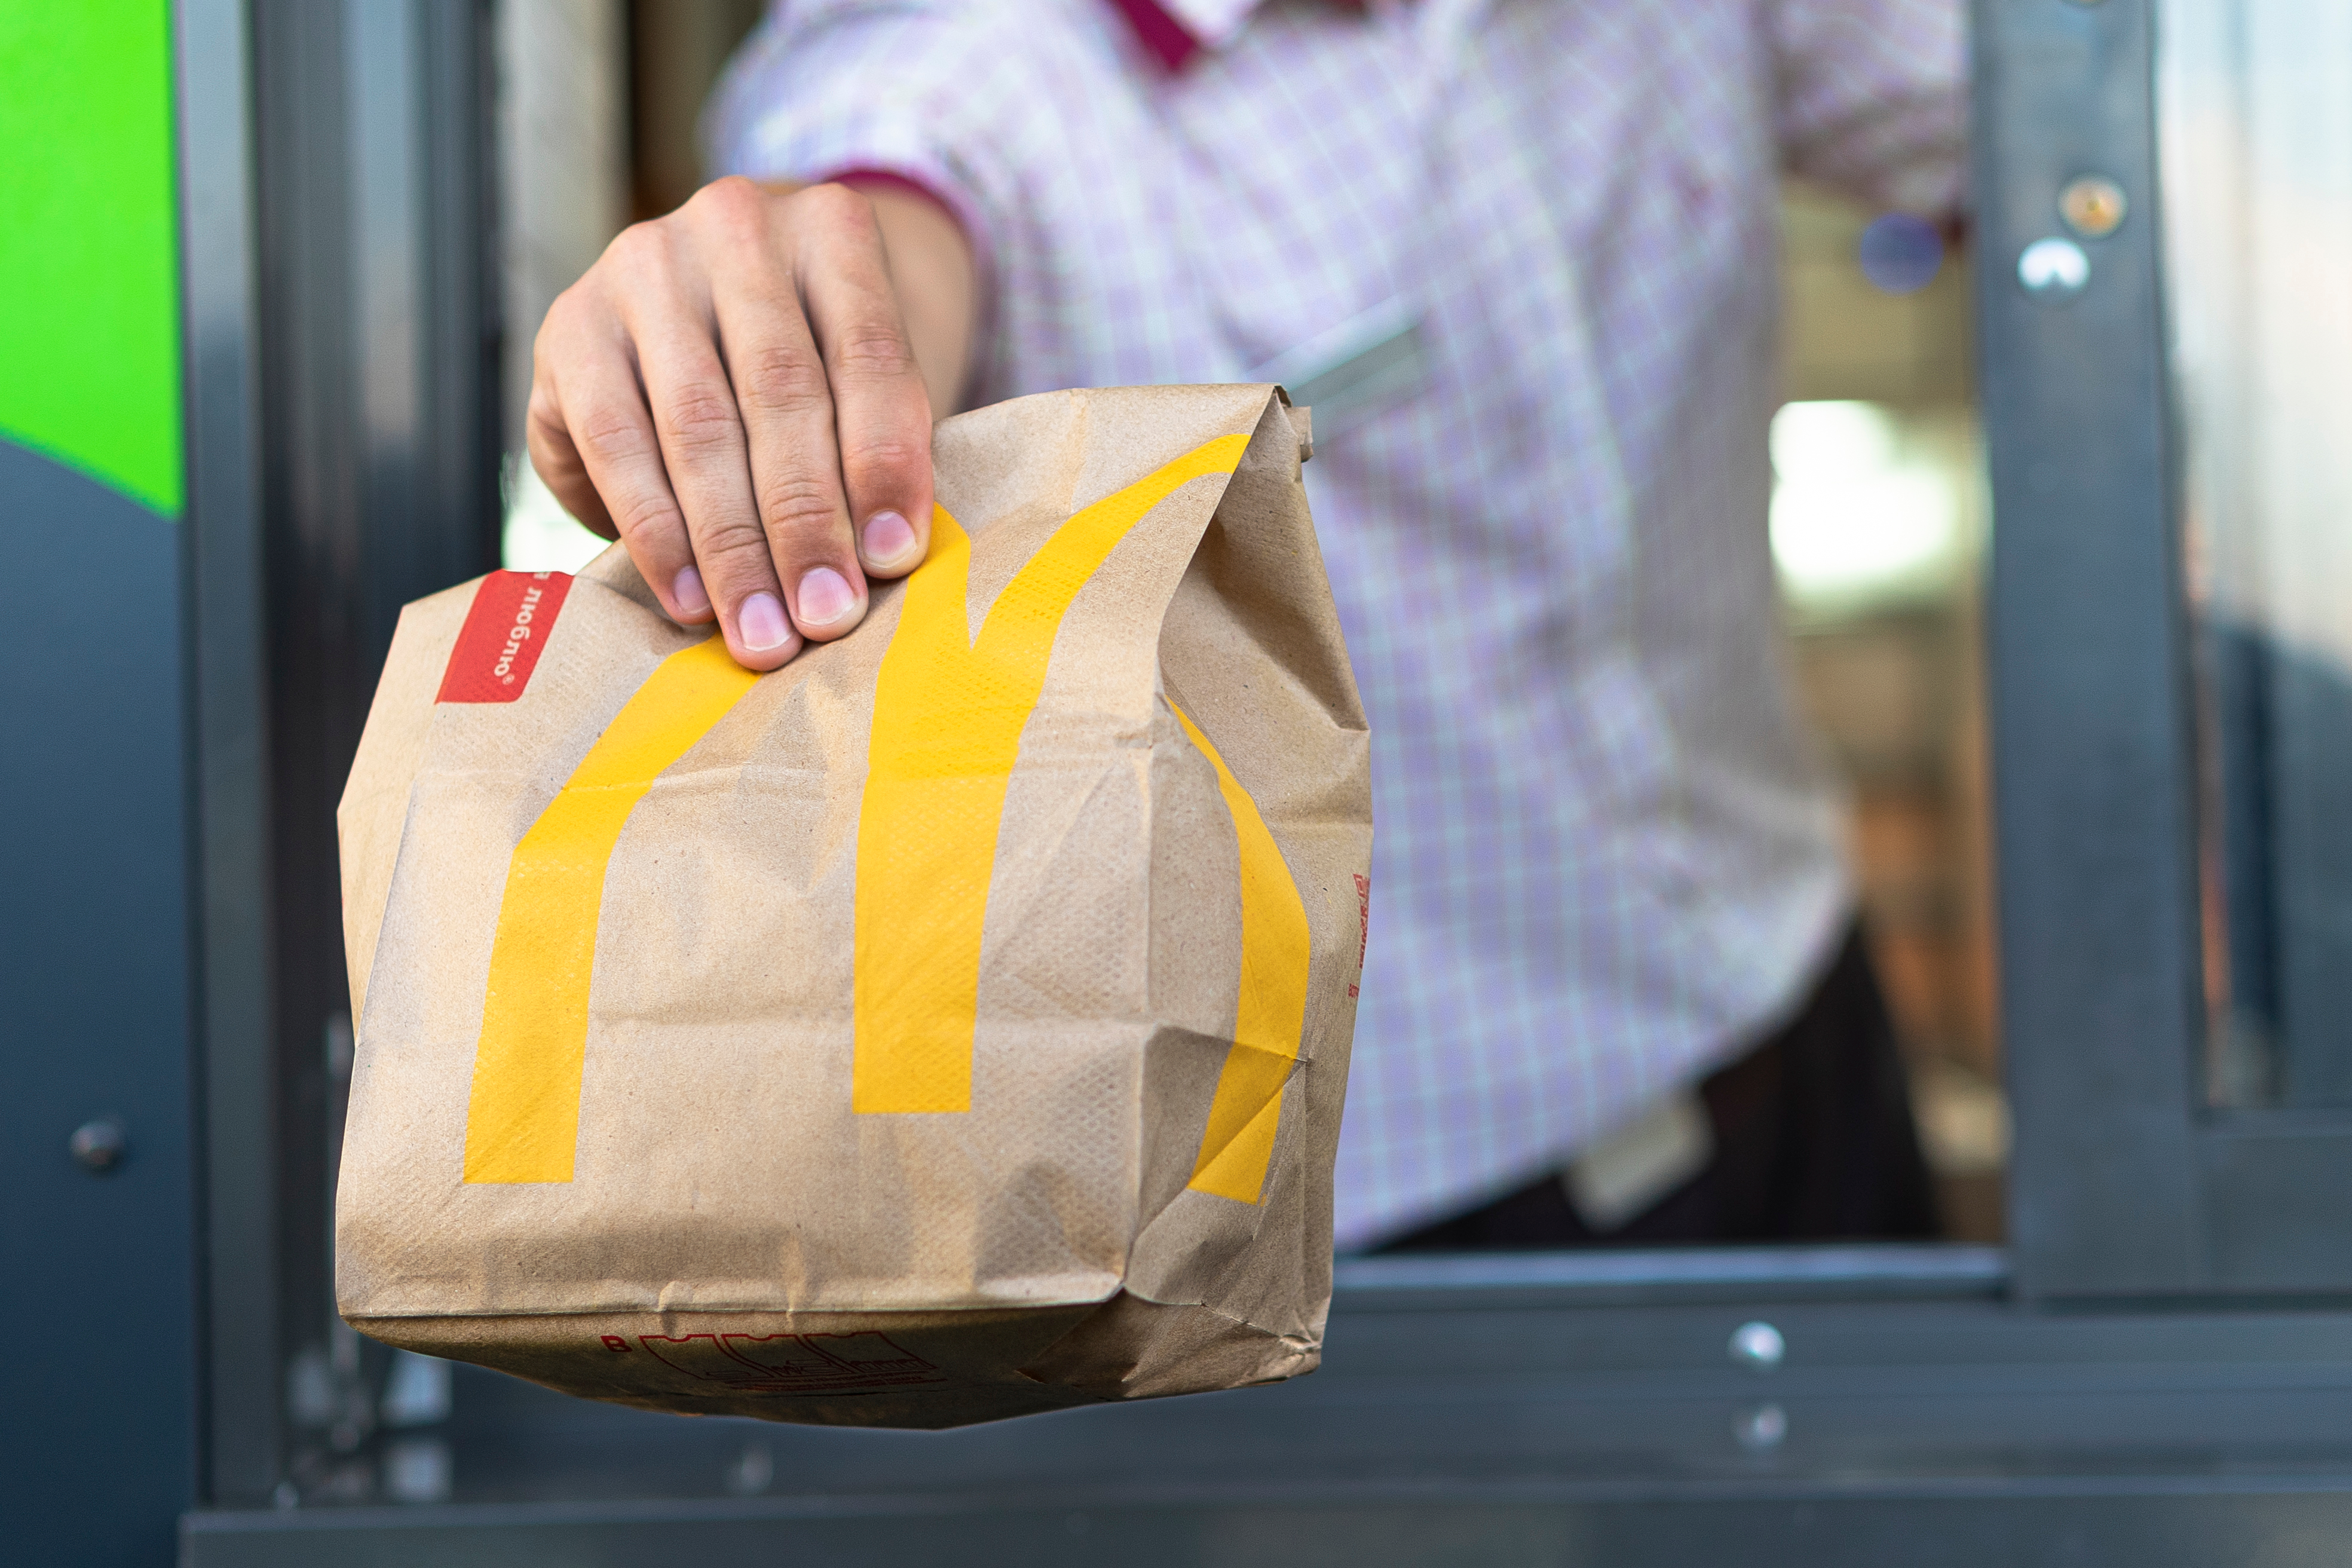 McDonalds worker holding bag of fast food at a drive-thru